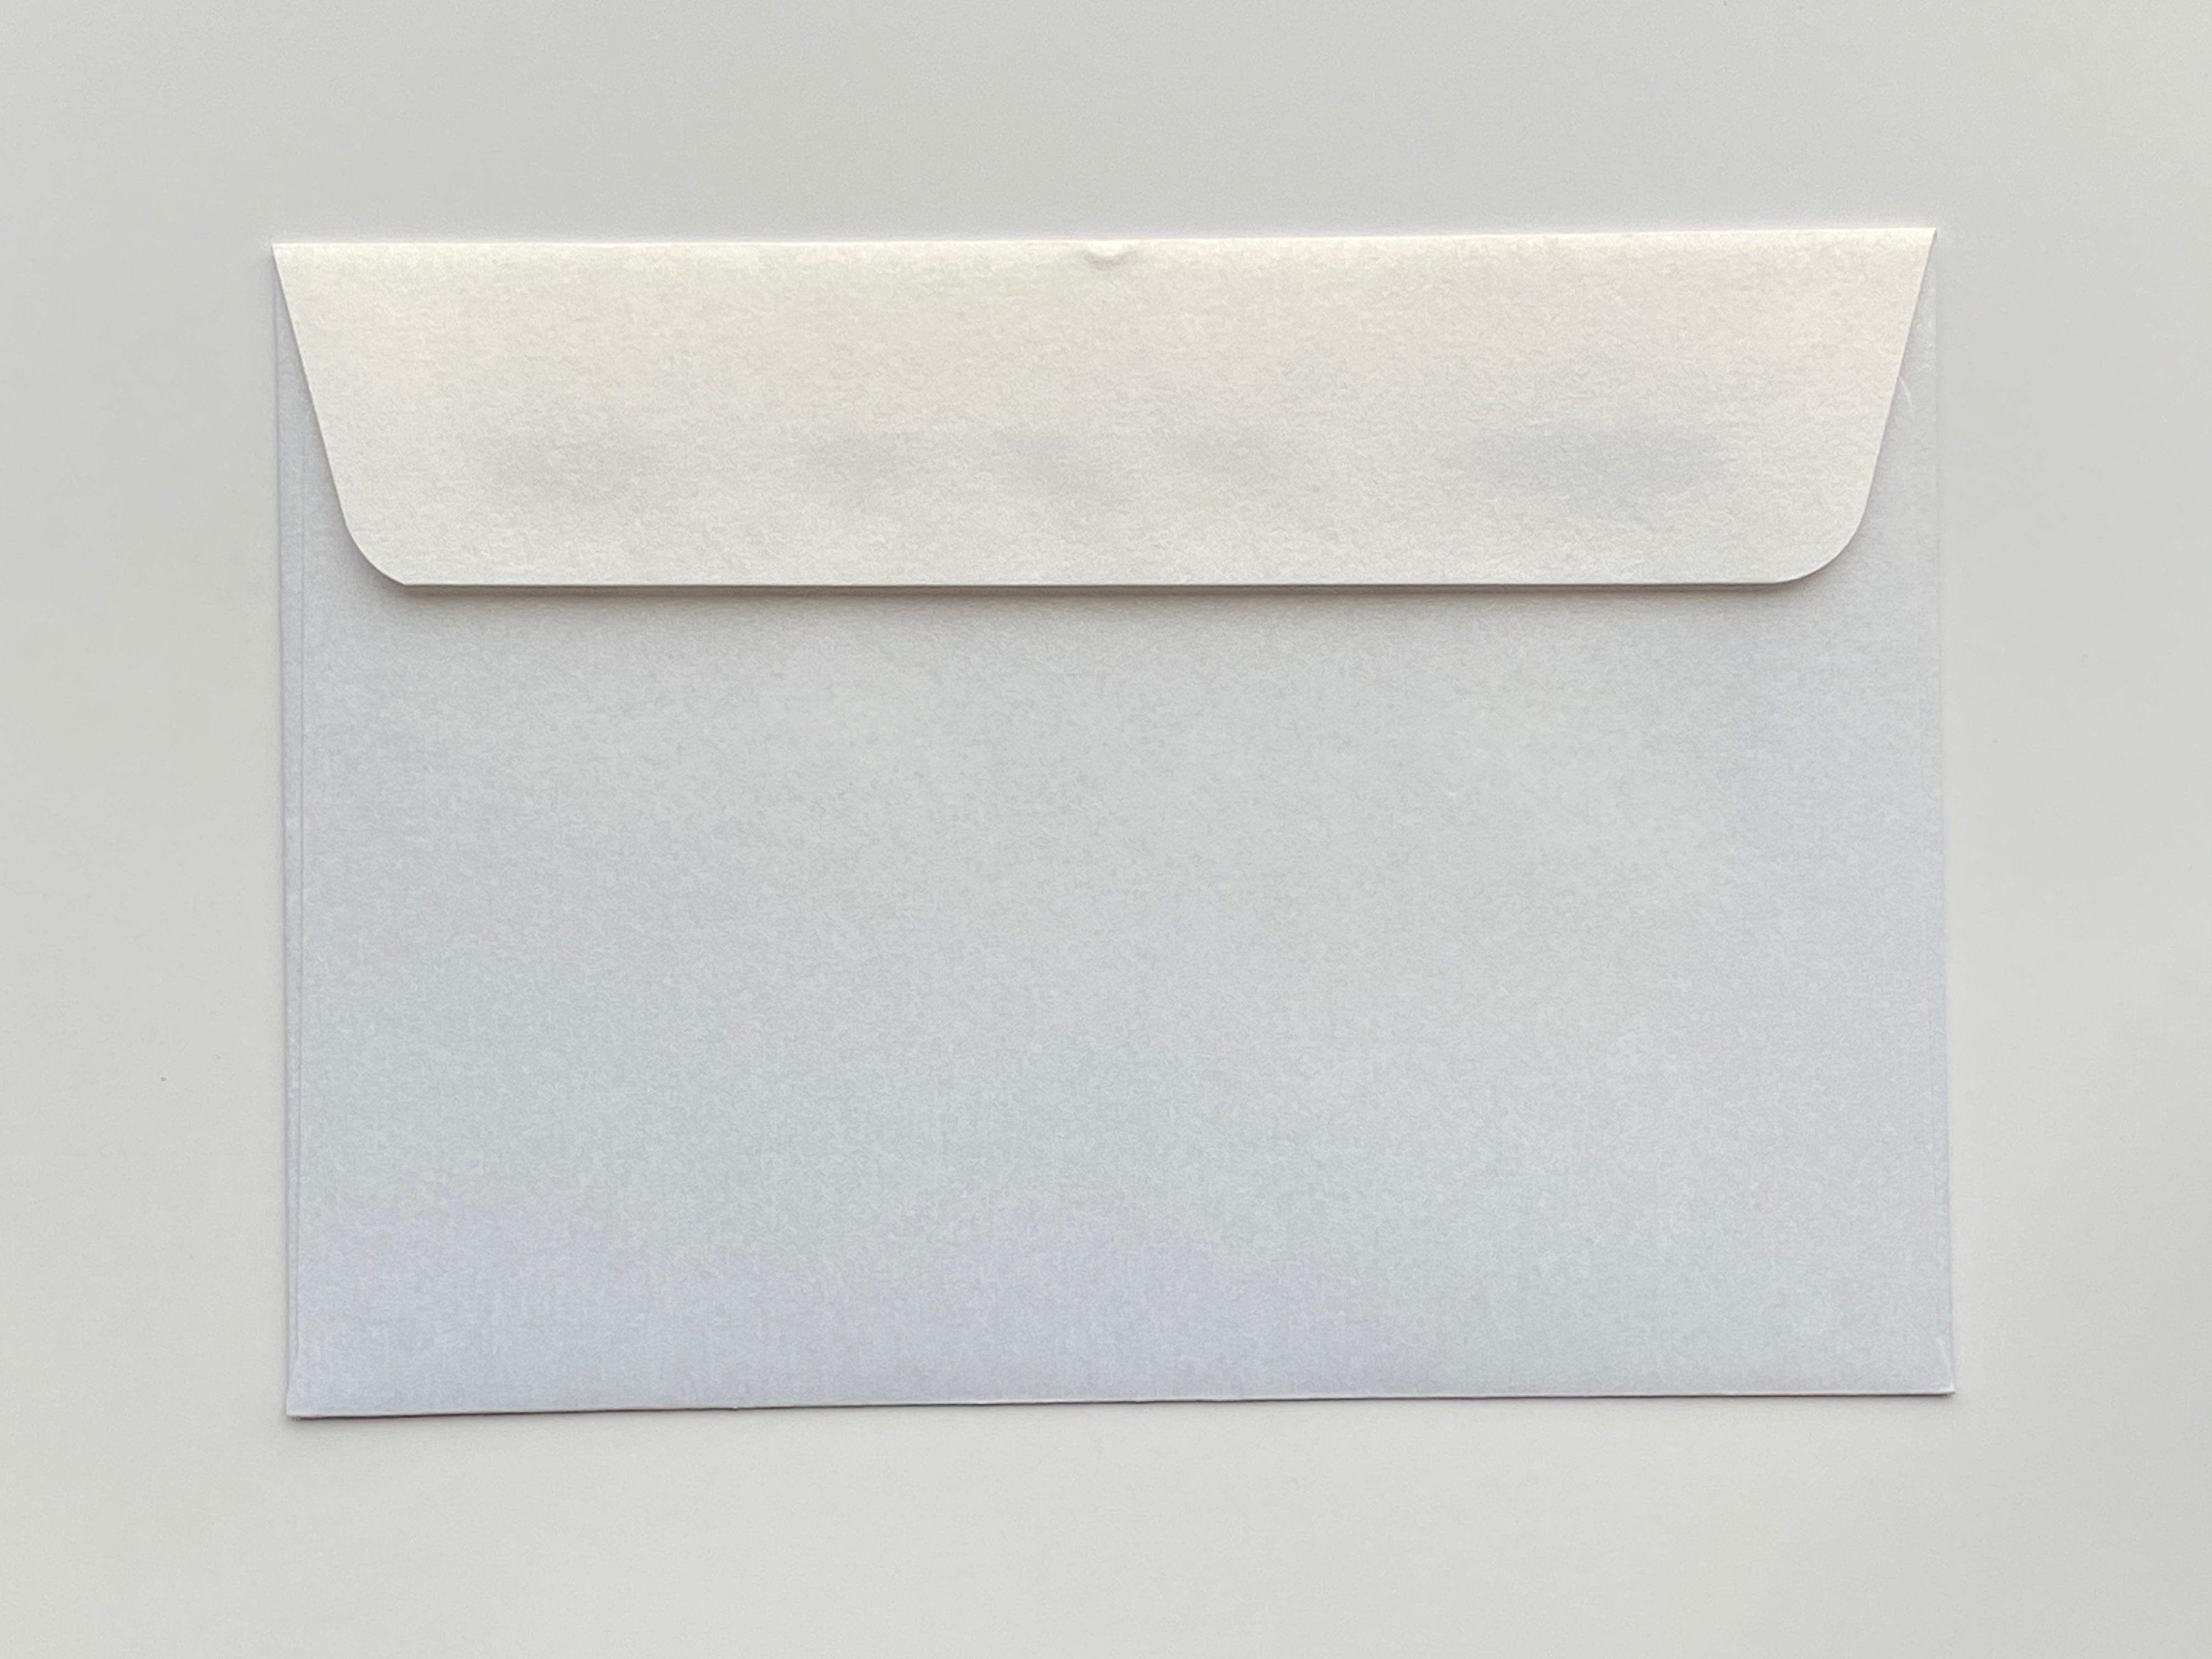 130x185mm metallic envelope